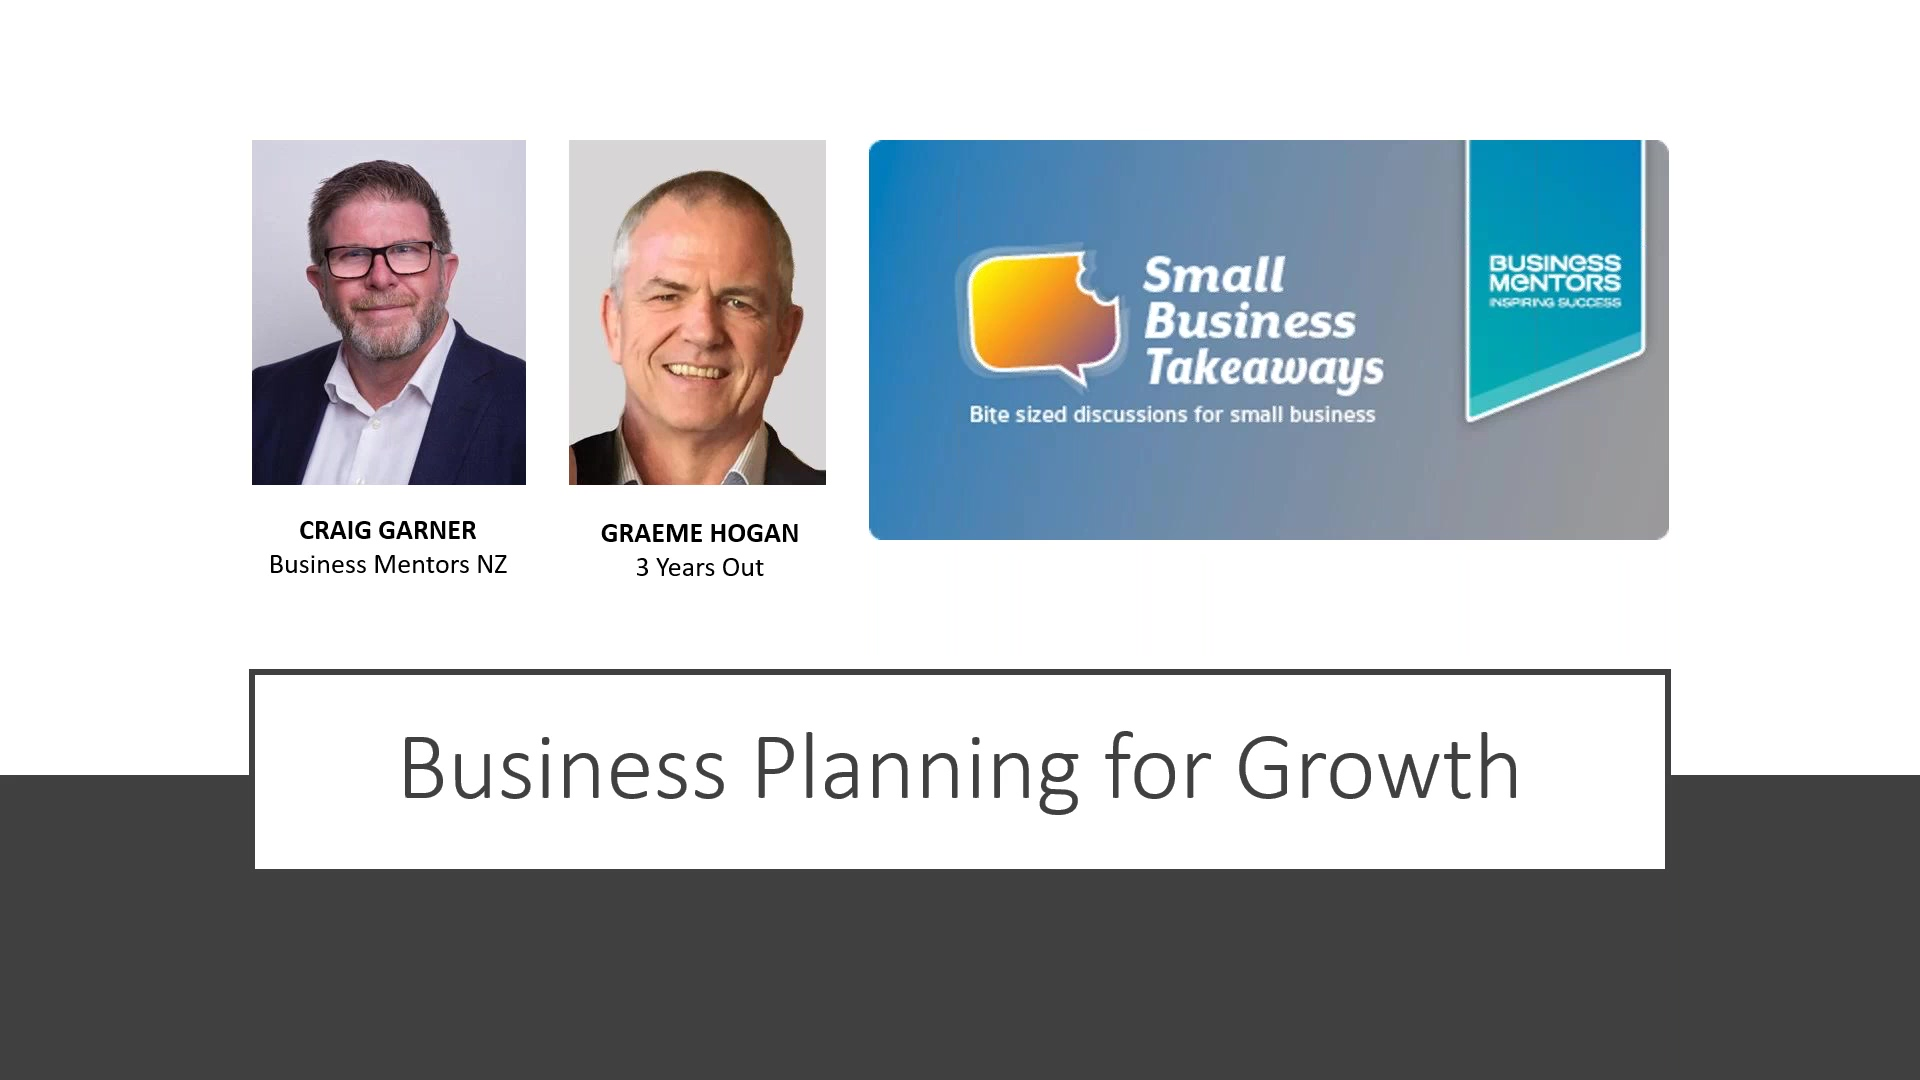 Business Mentors NZ Small Business Takeaways_ Business Planning for Growth